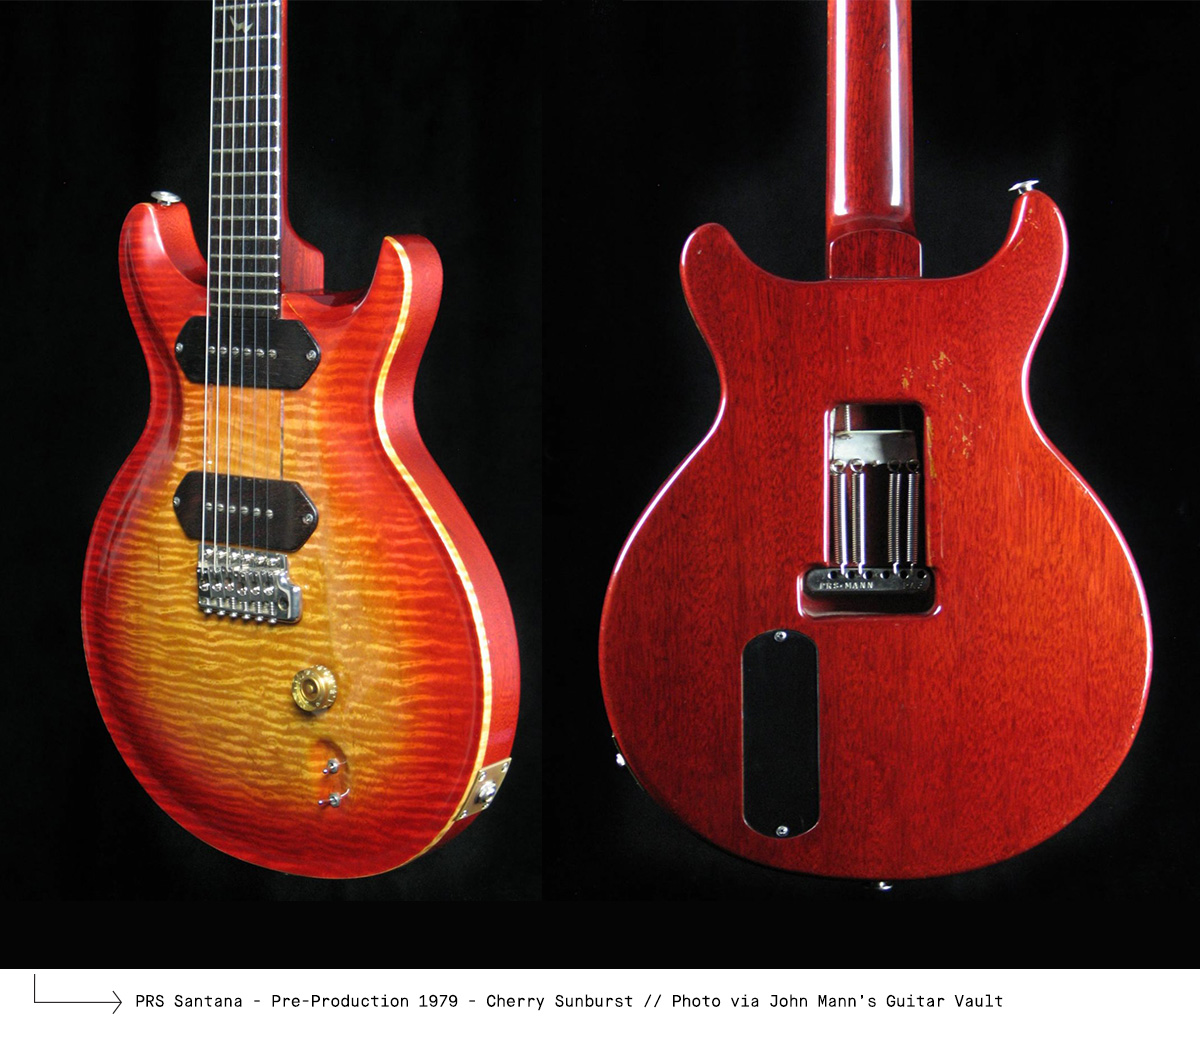 PRS Santana - Pre-Production 1979 - Cherry Sunburst